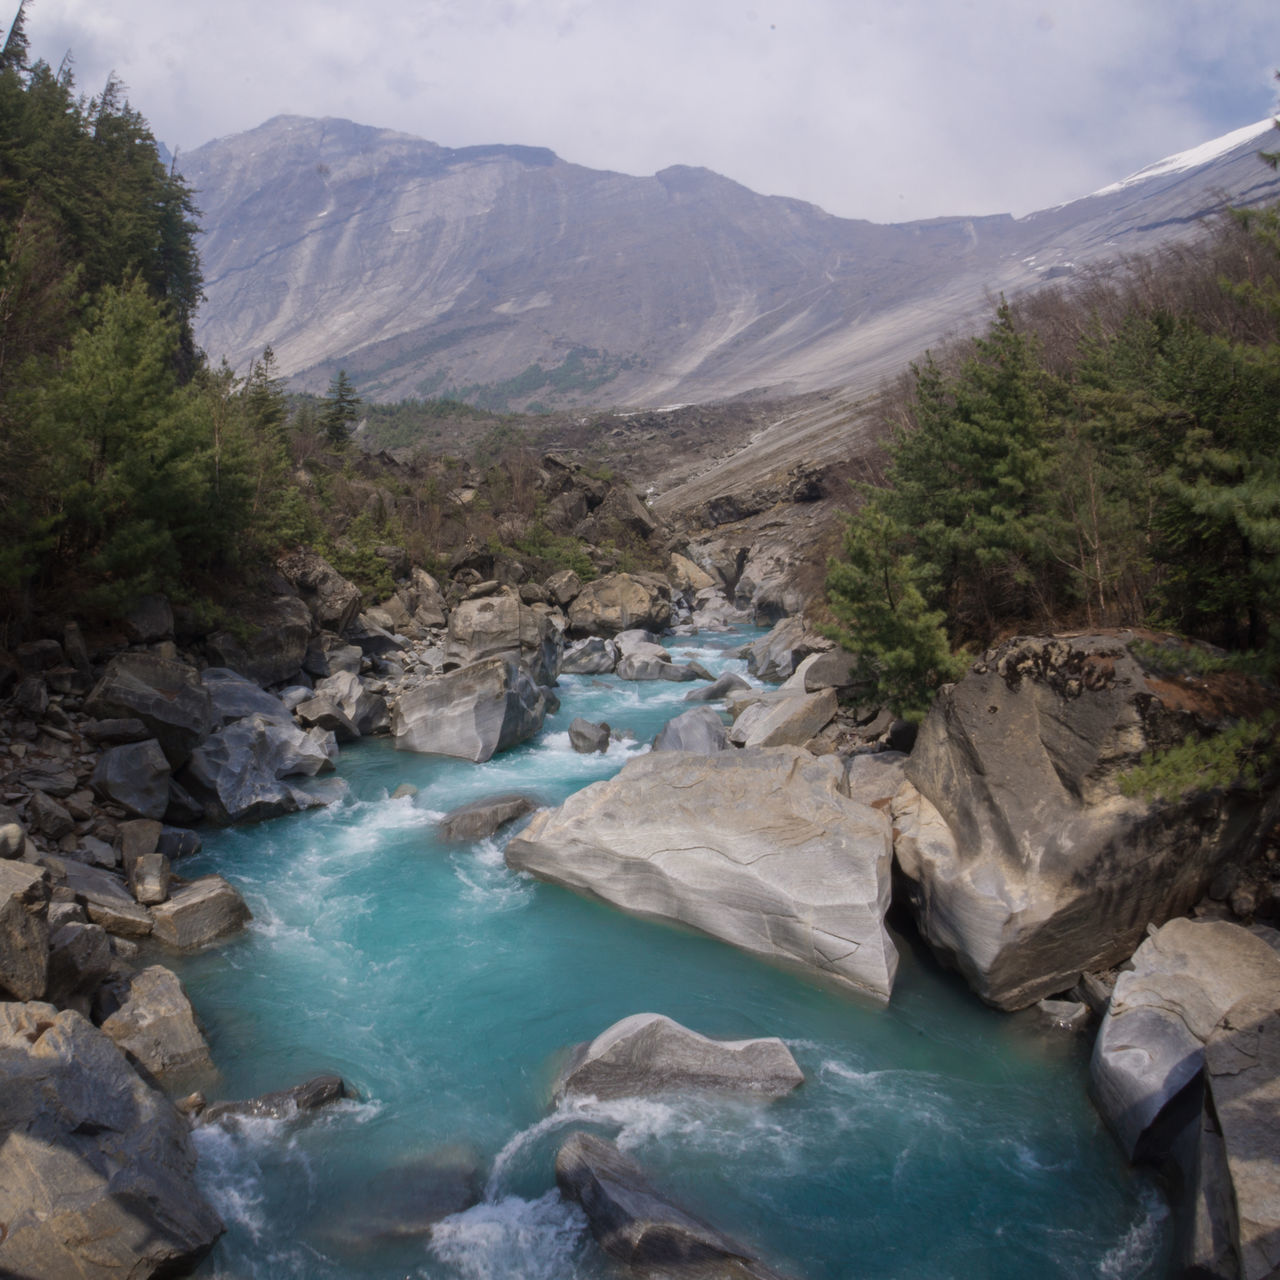 Hiking the Annapurna Circuit Beauty In Nature Day Landscape Mountain Nature No People Outdoors River Scenery Scenics Sky Tranquility Water The Great Outdoors - 2017 EyeEm Awards